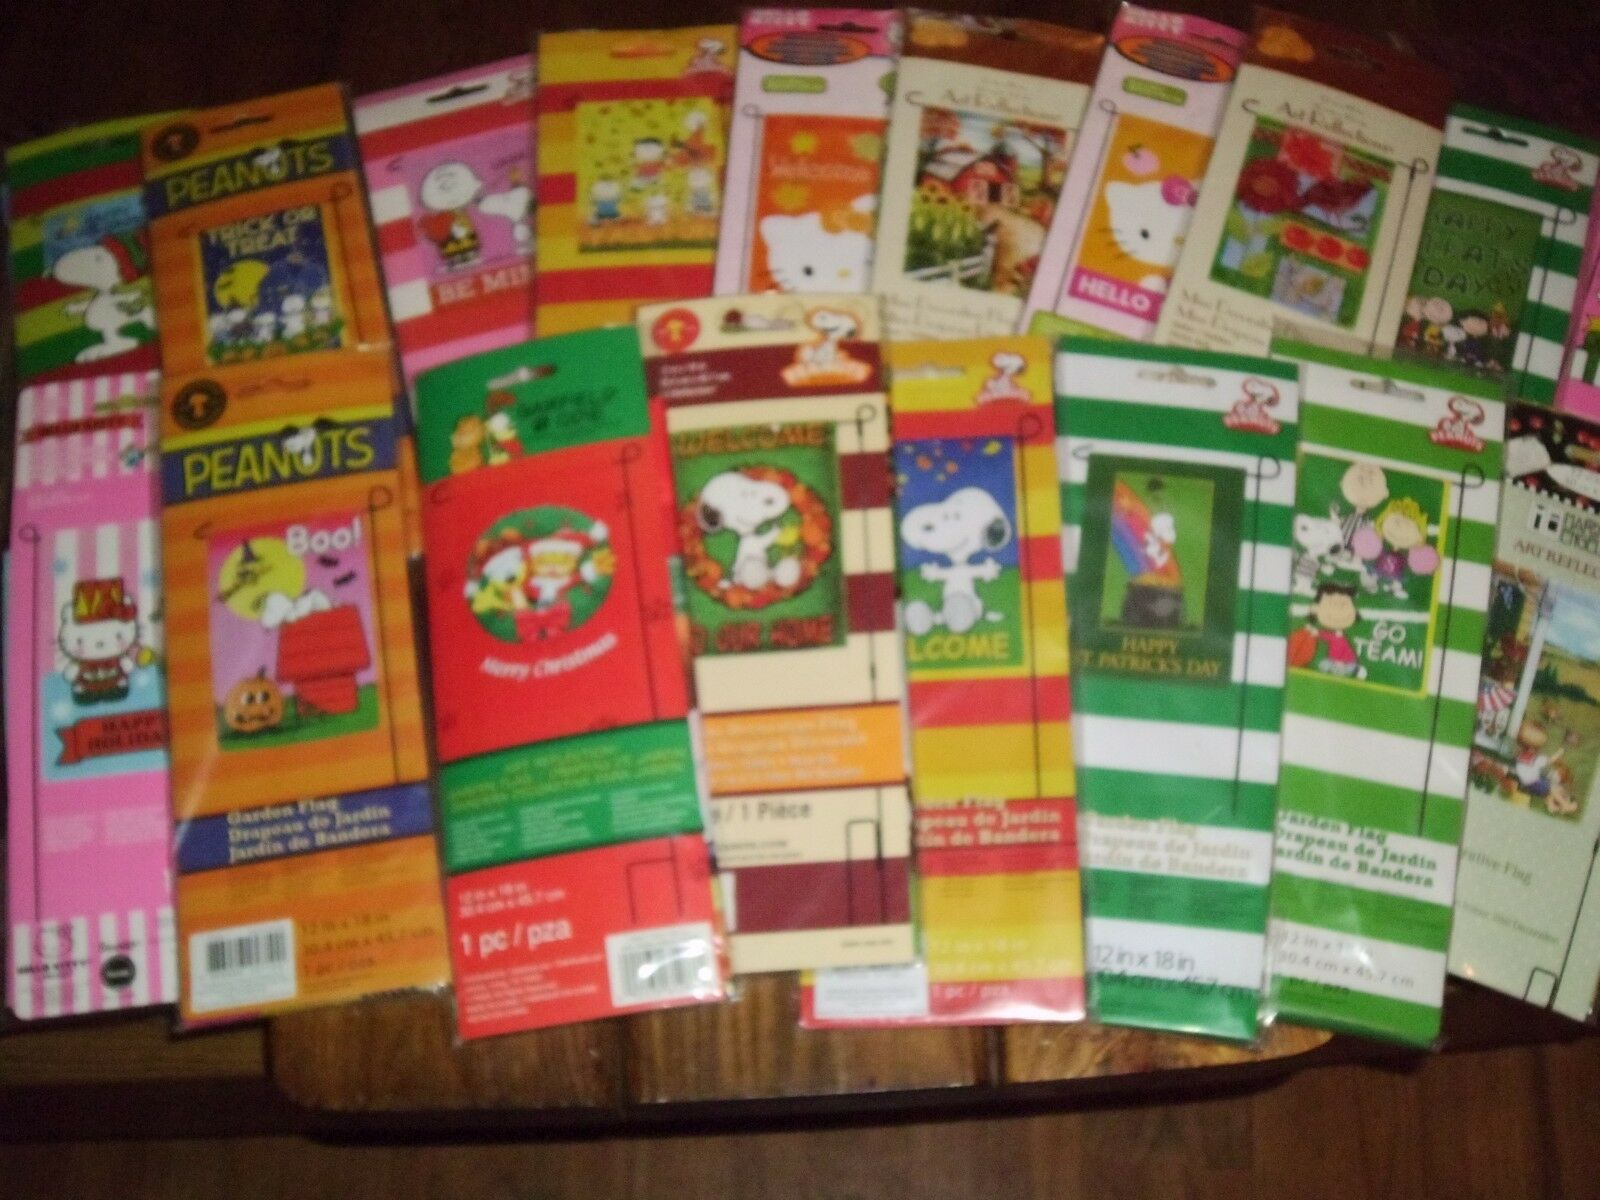 small garden flags peanuts christmas halloween st patricks valentines spring 1 of 1free shipping - Small Garden Flags